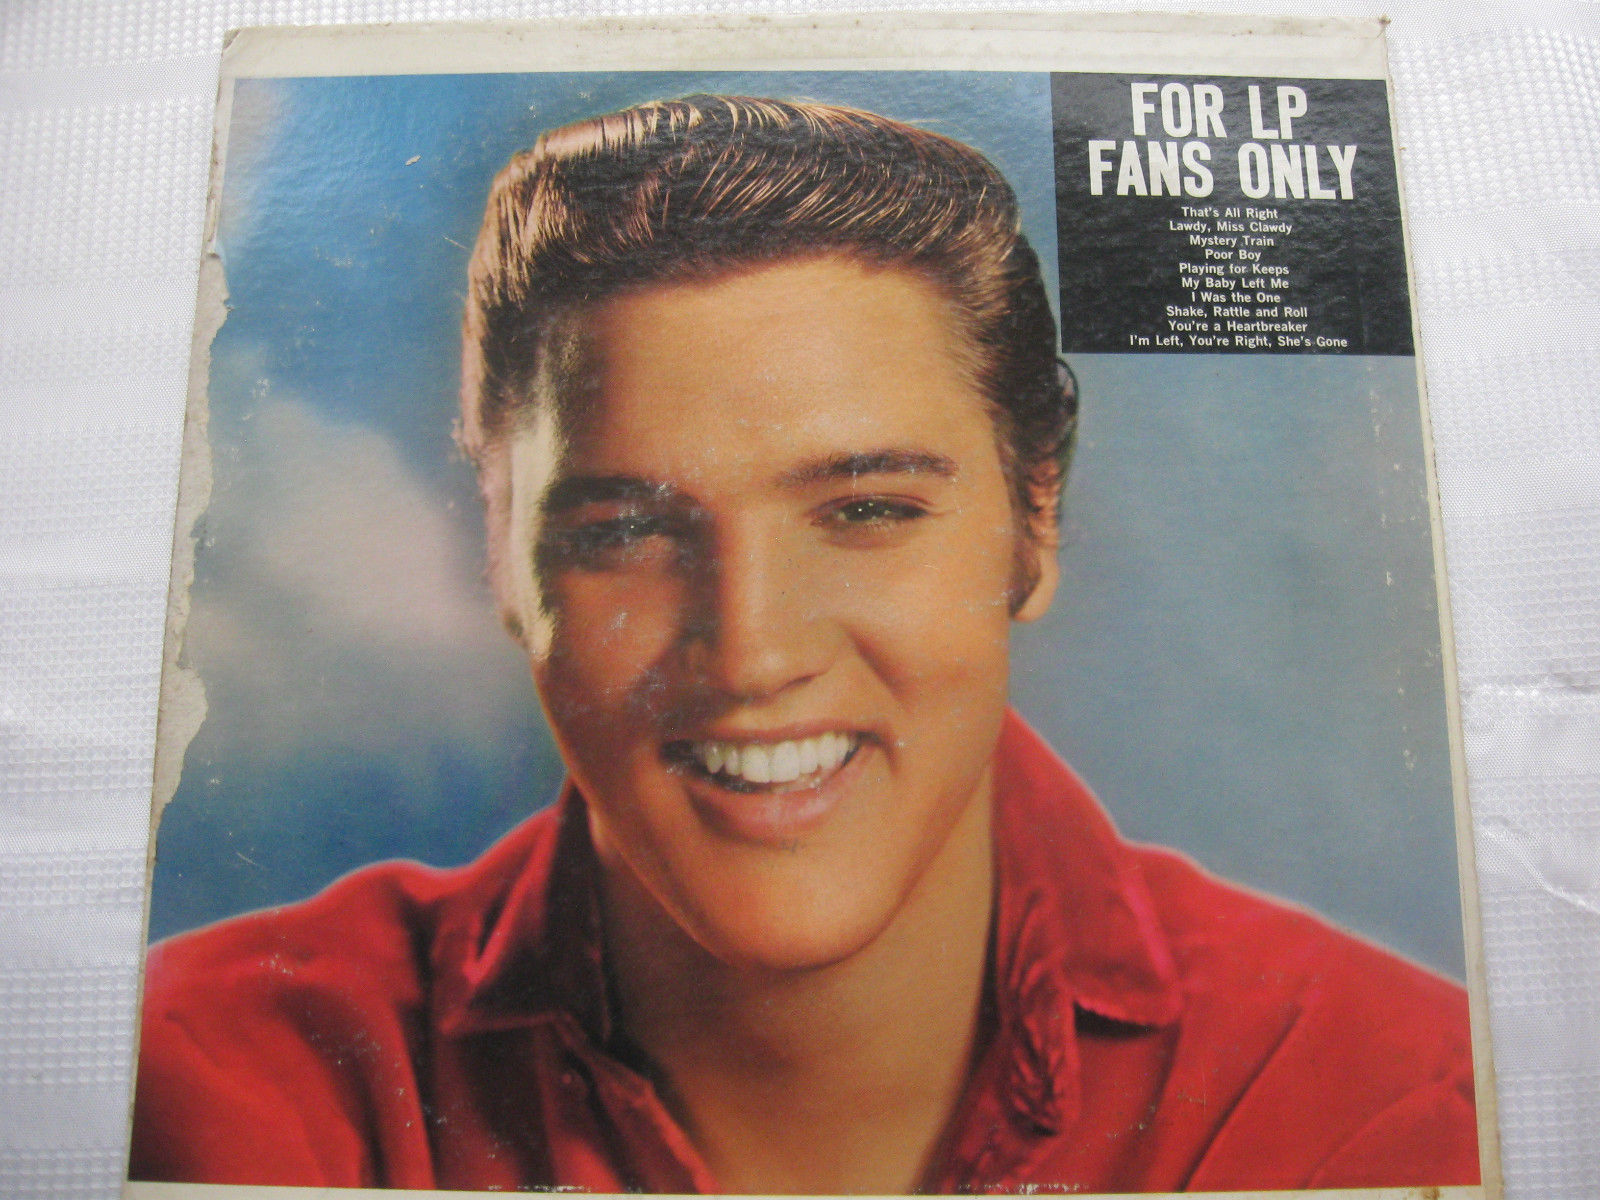 Elvis Presley For LP Fans Only RCA LSP-1990e Stereo Vinyl Record LP RARE Version image 2